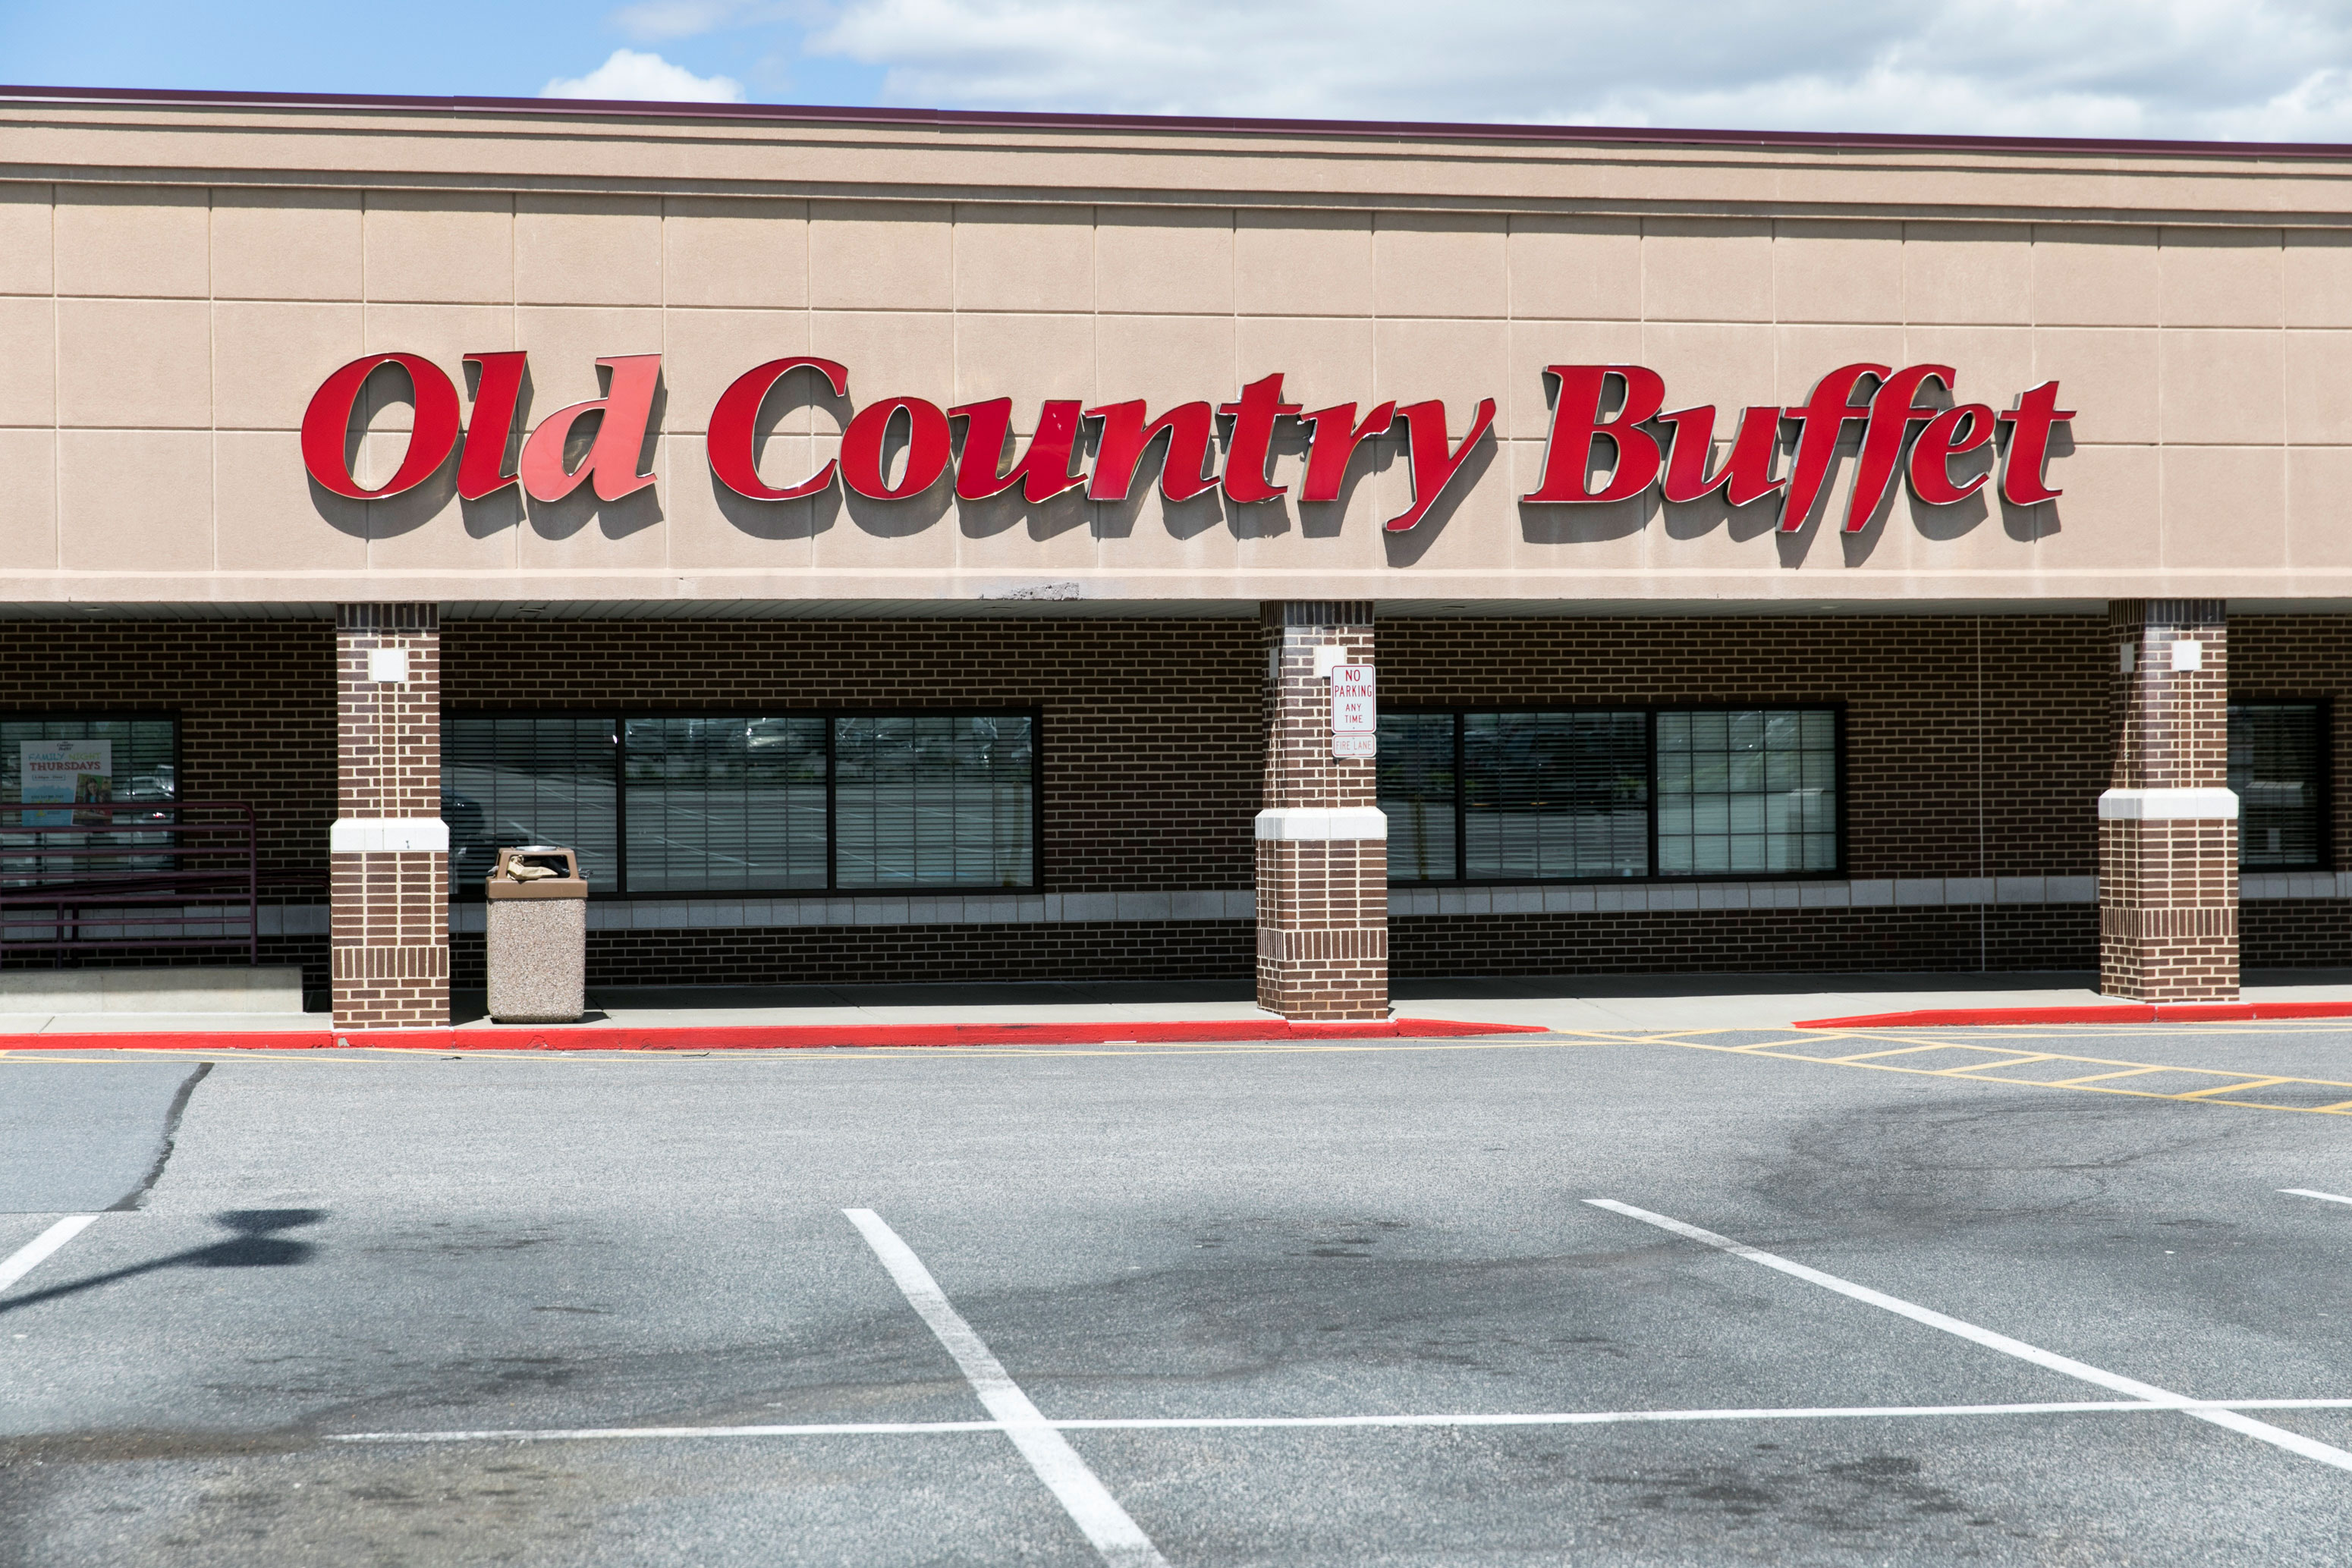 The parent company of Old Country Buffet filed for bankruptcy